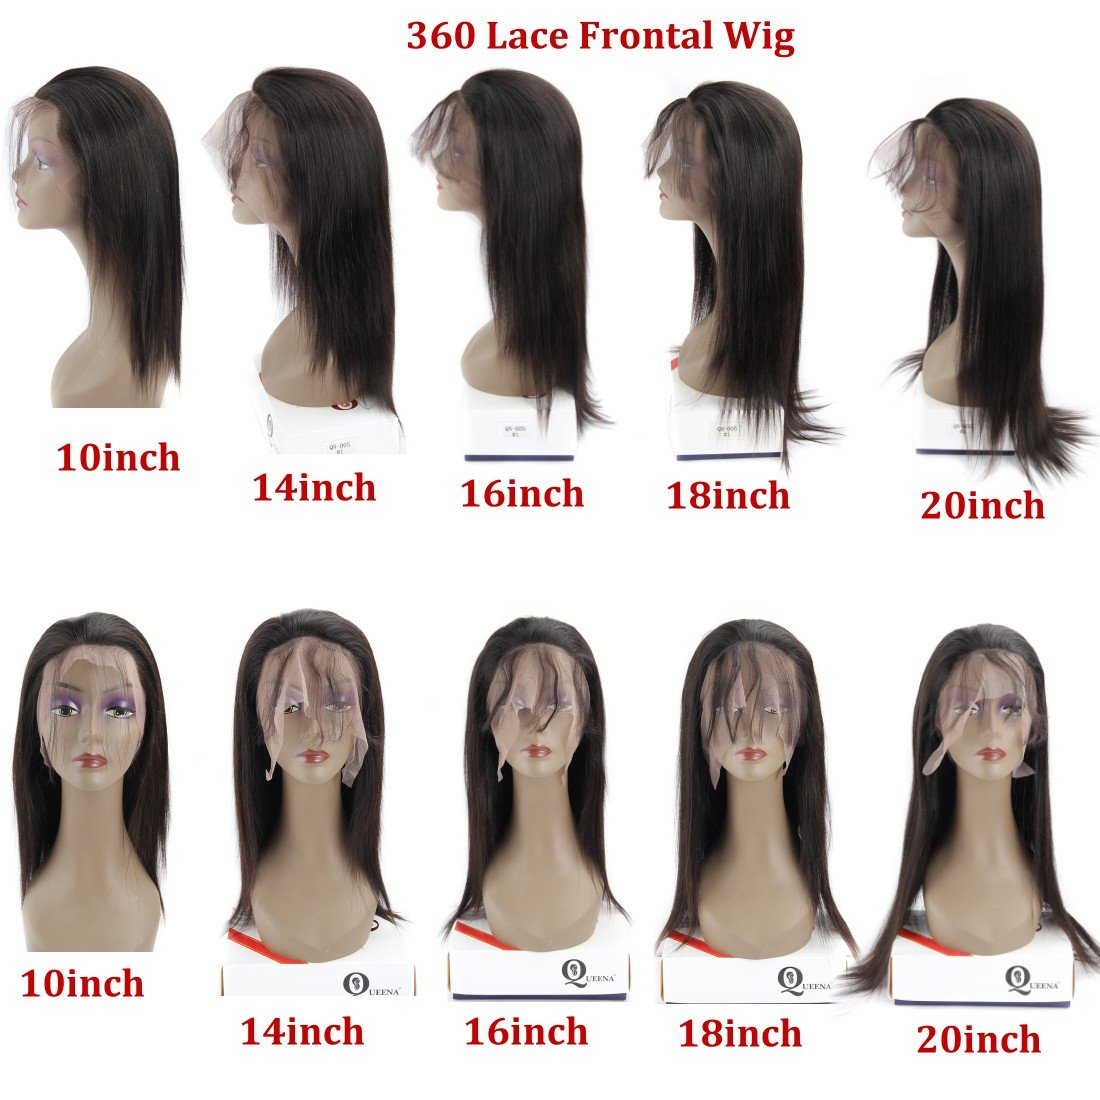 360 Frontal Lace Wig Straight 360 Lace Front Human Hair Wigs Peruvian Virgin 360 Lace Frontal Wig 130% Density with Pre Plucked Natural Hairline Baby Hair 360 Degree Lace Human Hair Wig (14inch) by QUEENA (Image #8)